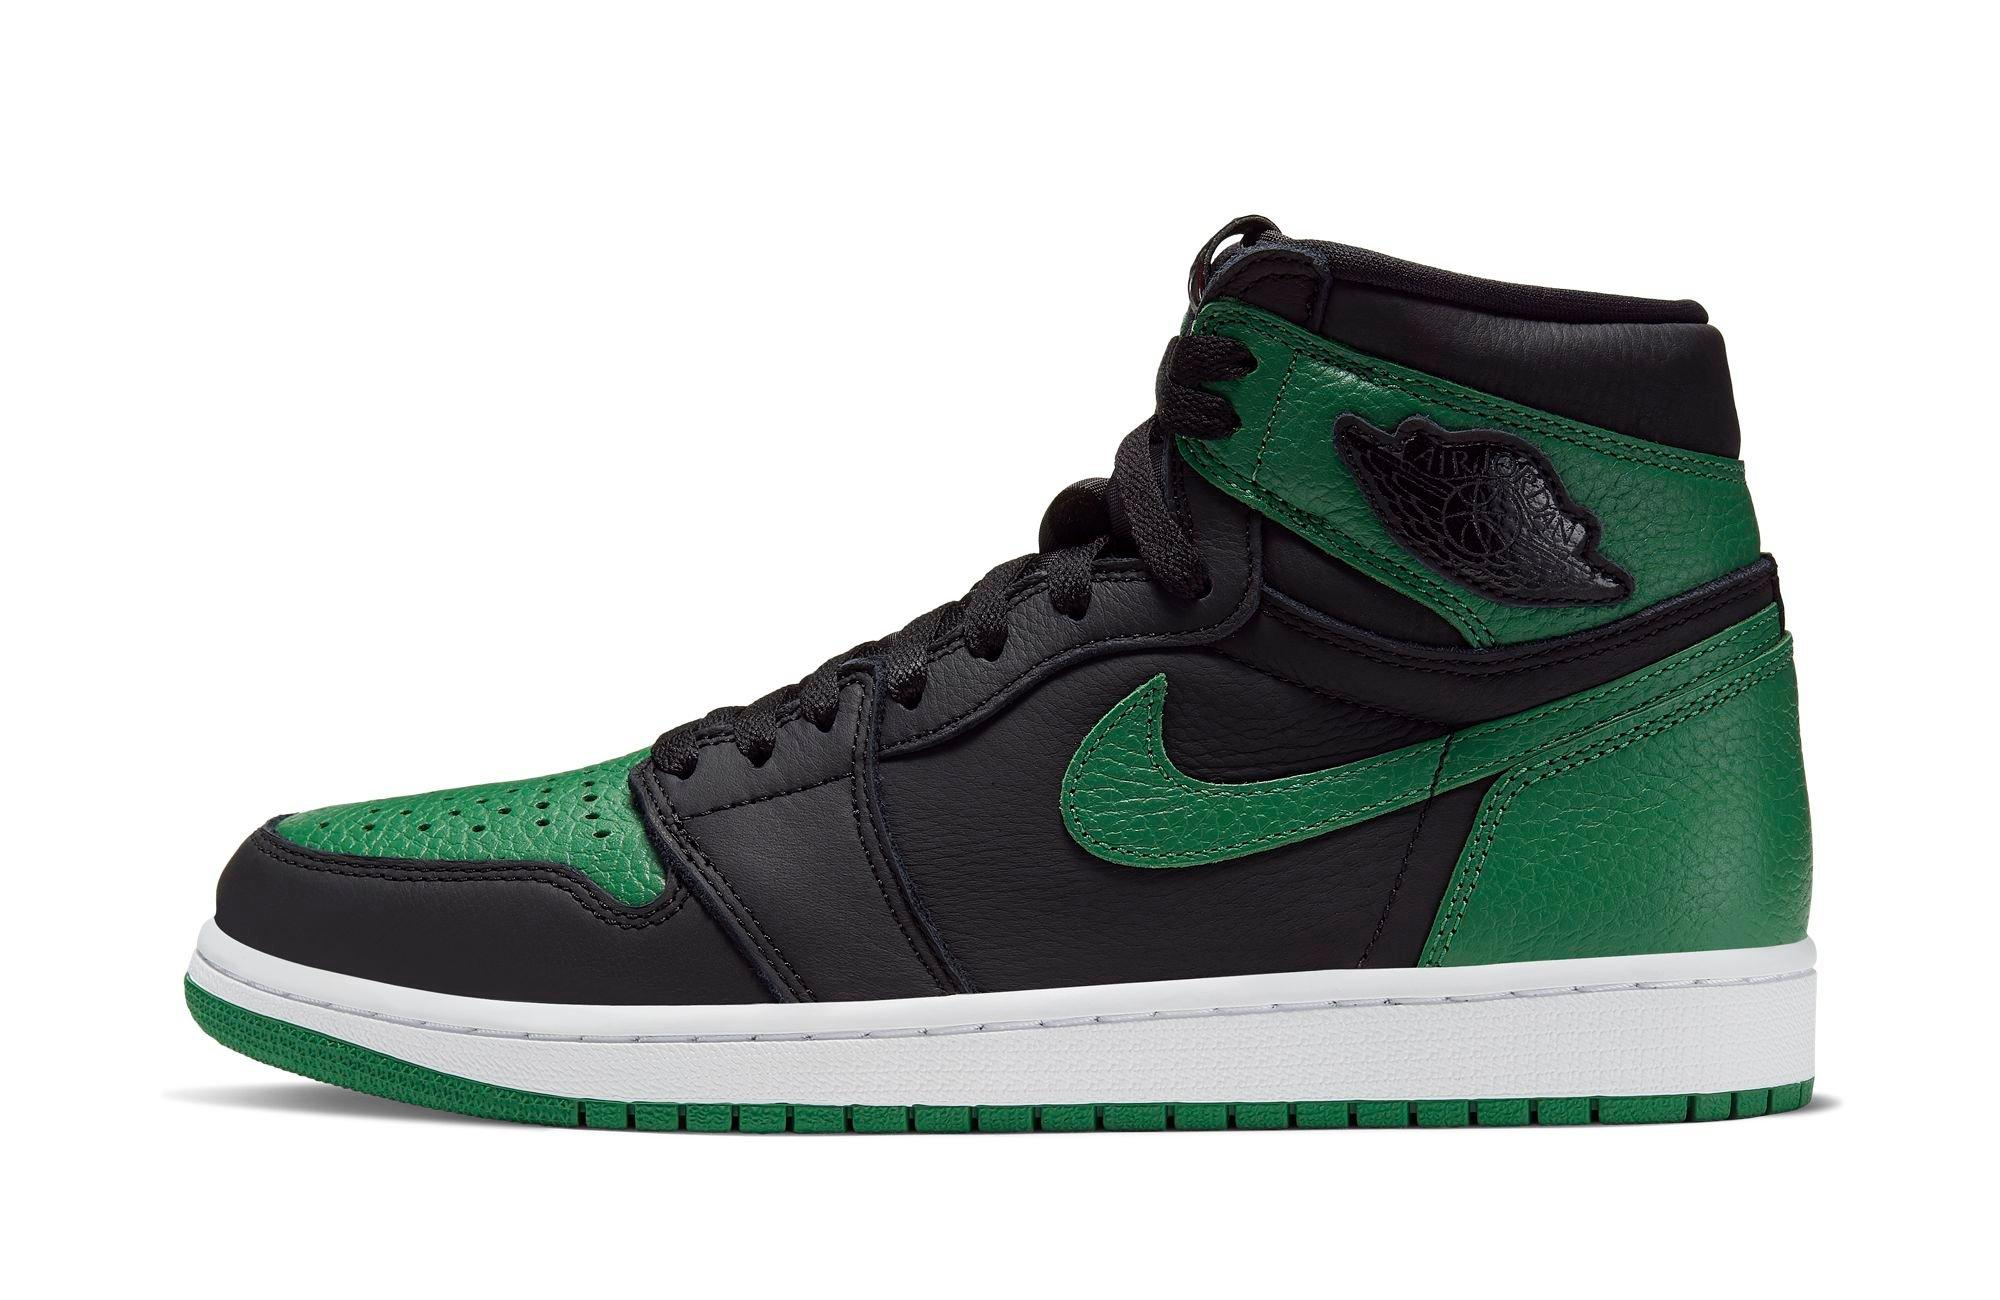 Left side of Air Jordan 1 OG Pine Green